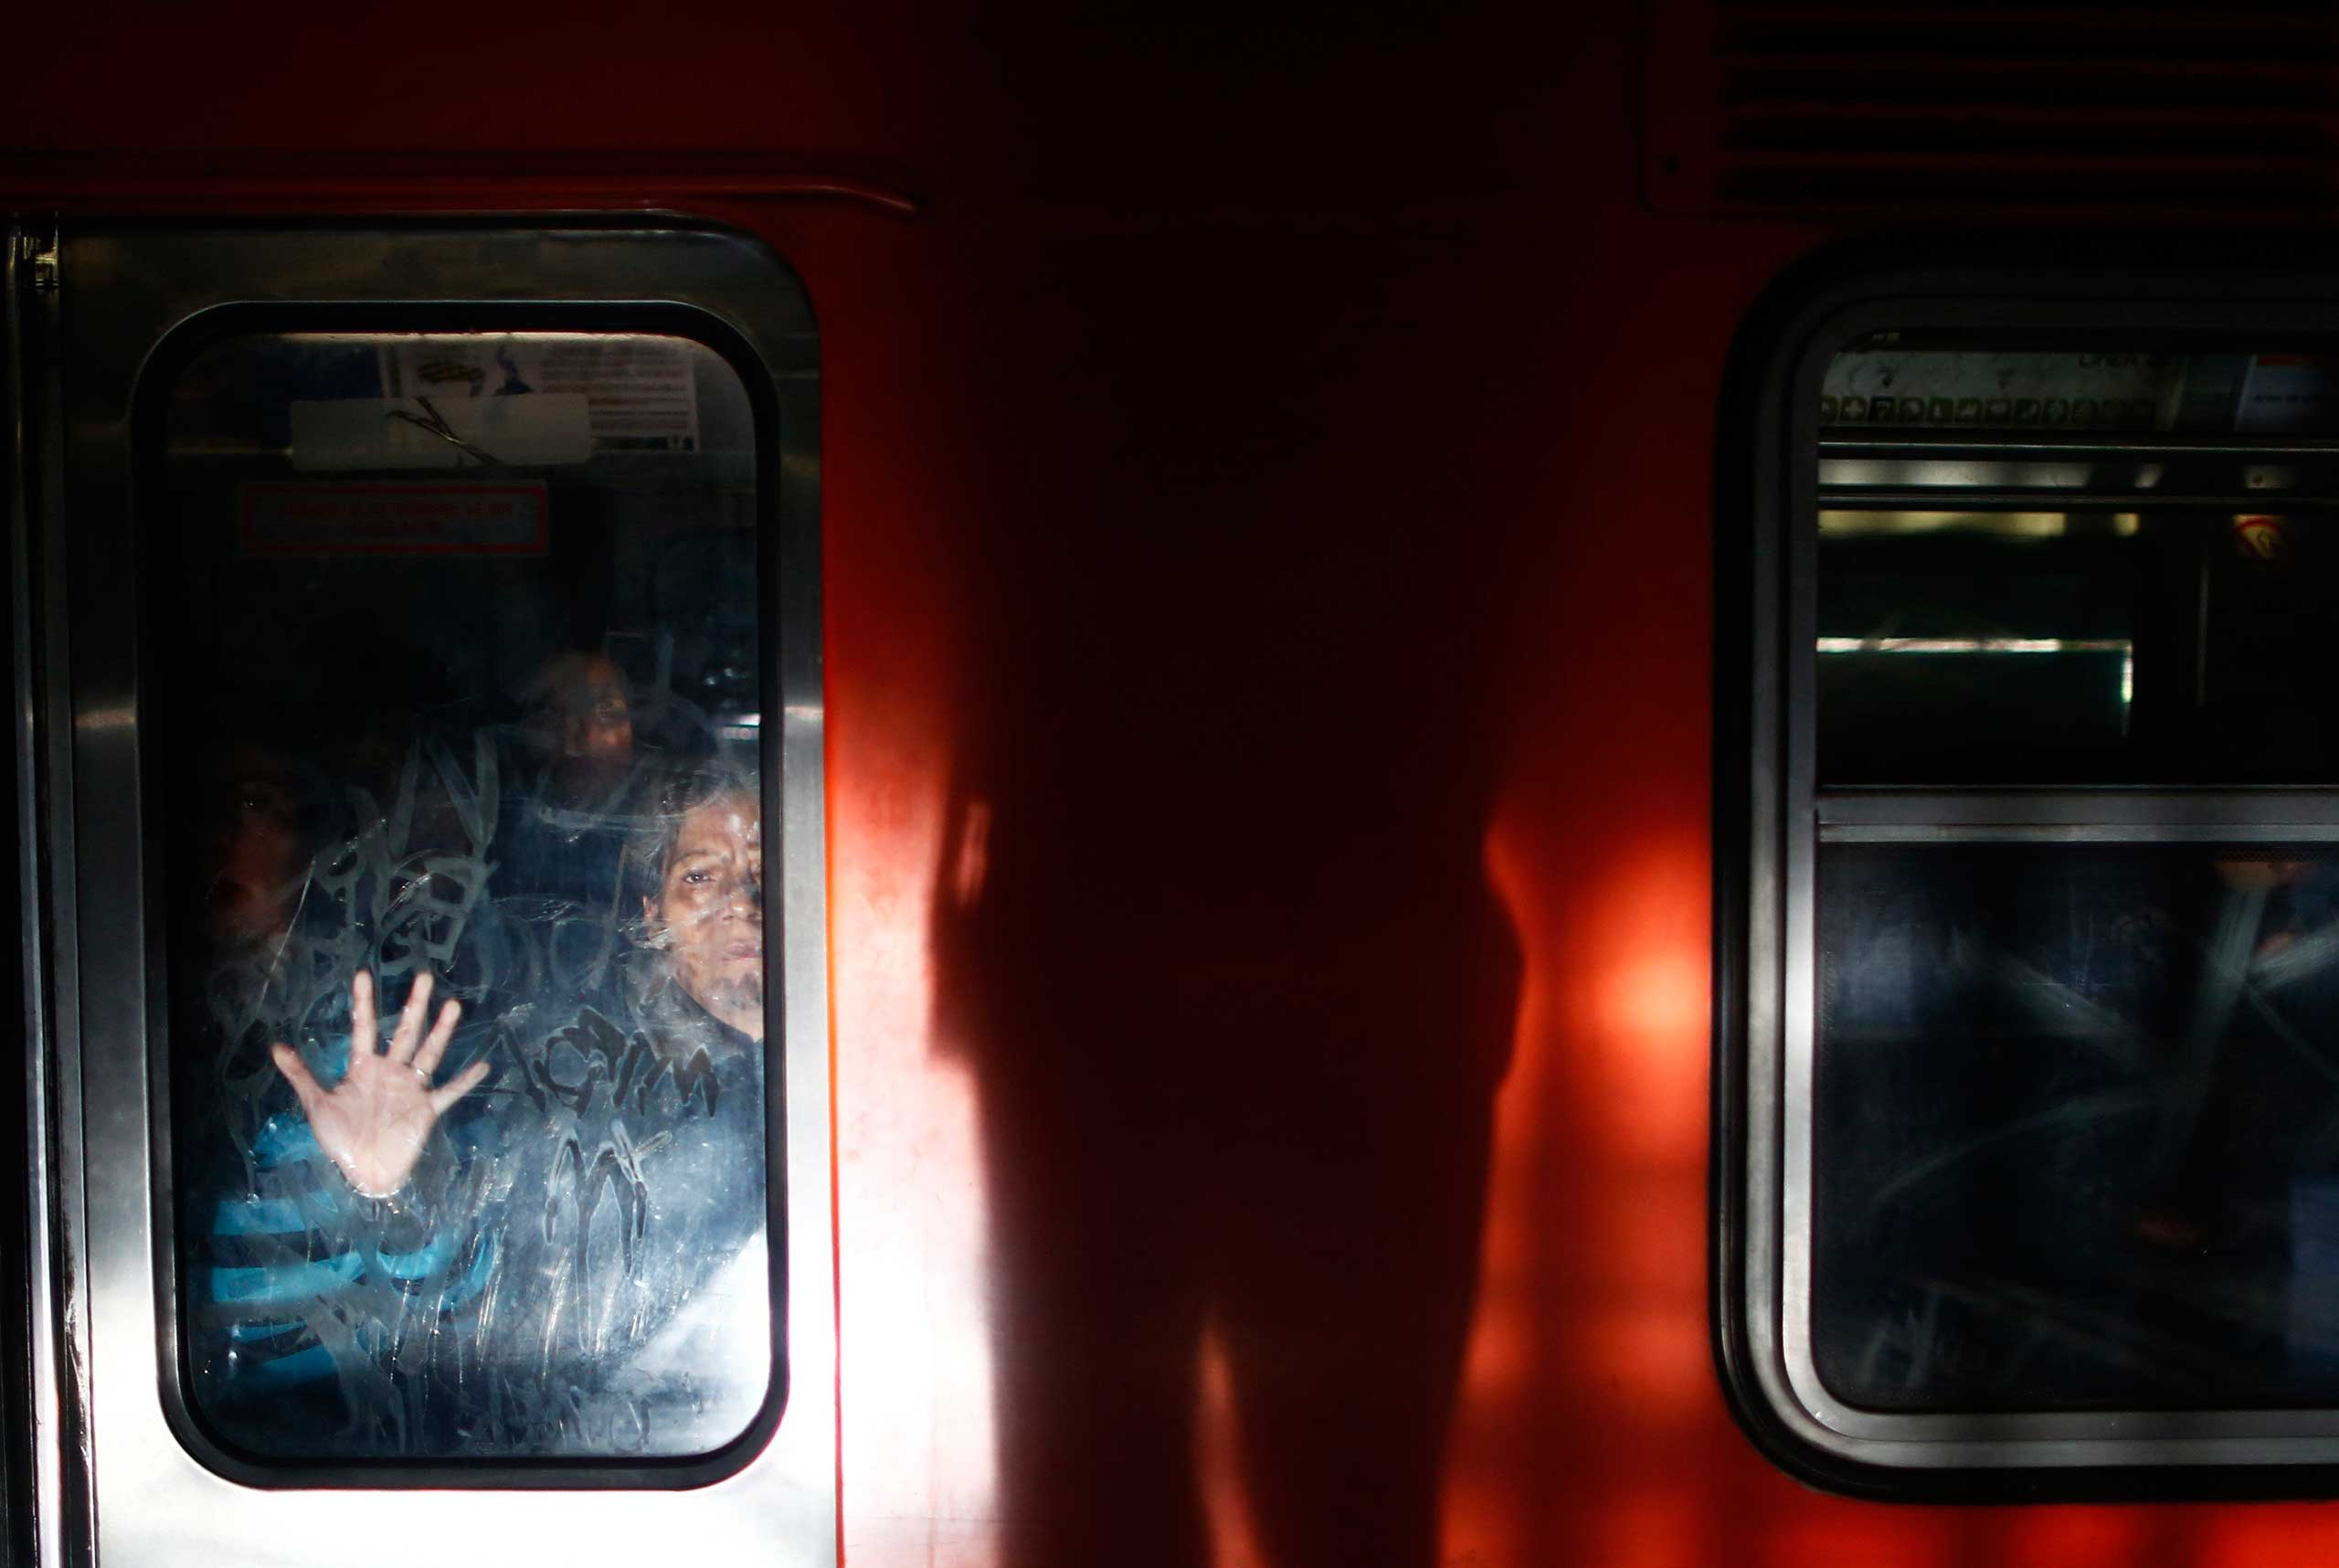 Oct. 24, 2014. Women ride the women-only passenger car at a subway station in Mexico City. Trains, buses and taxis for women only are on the rise in cities globally.